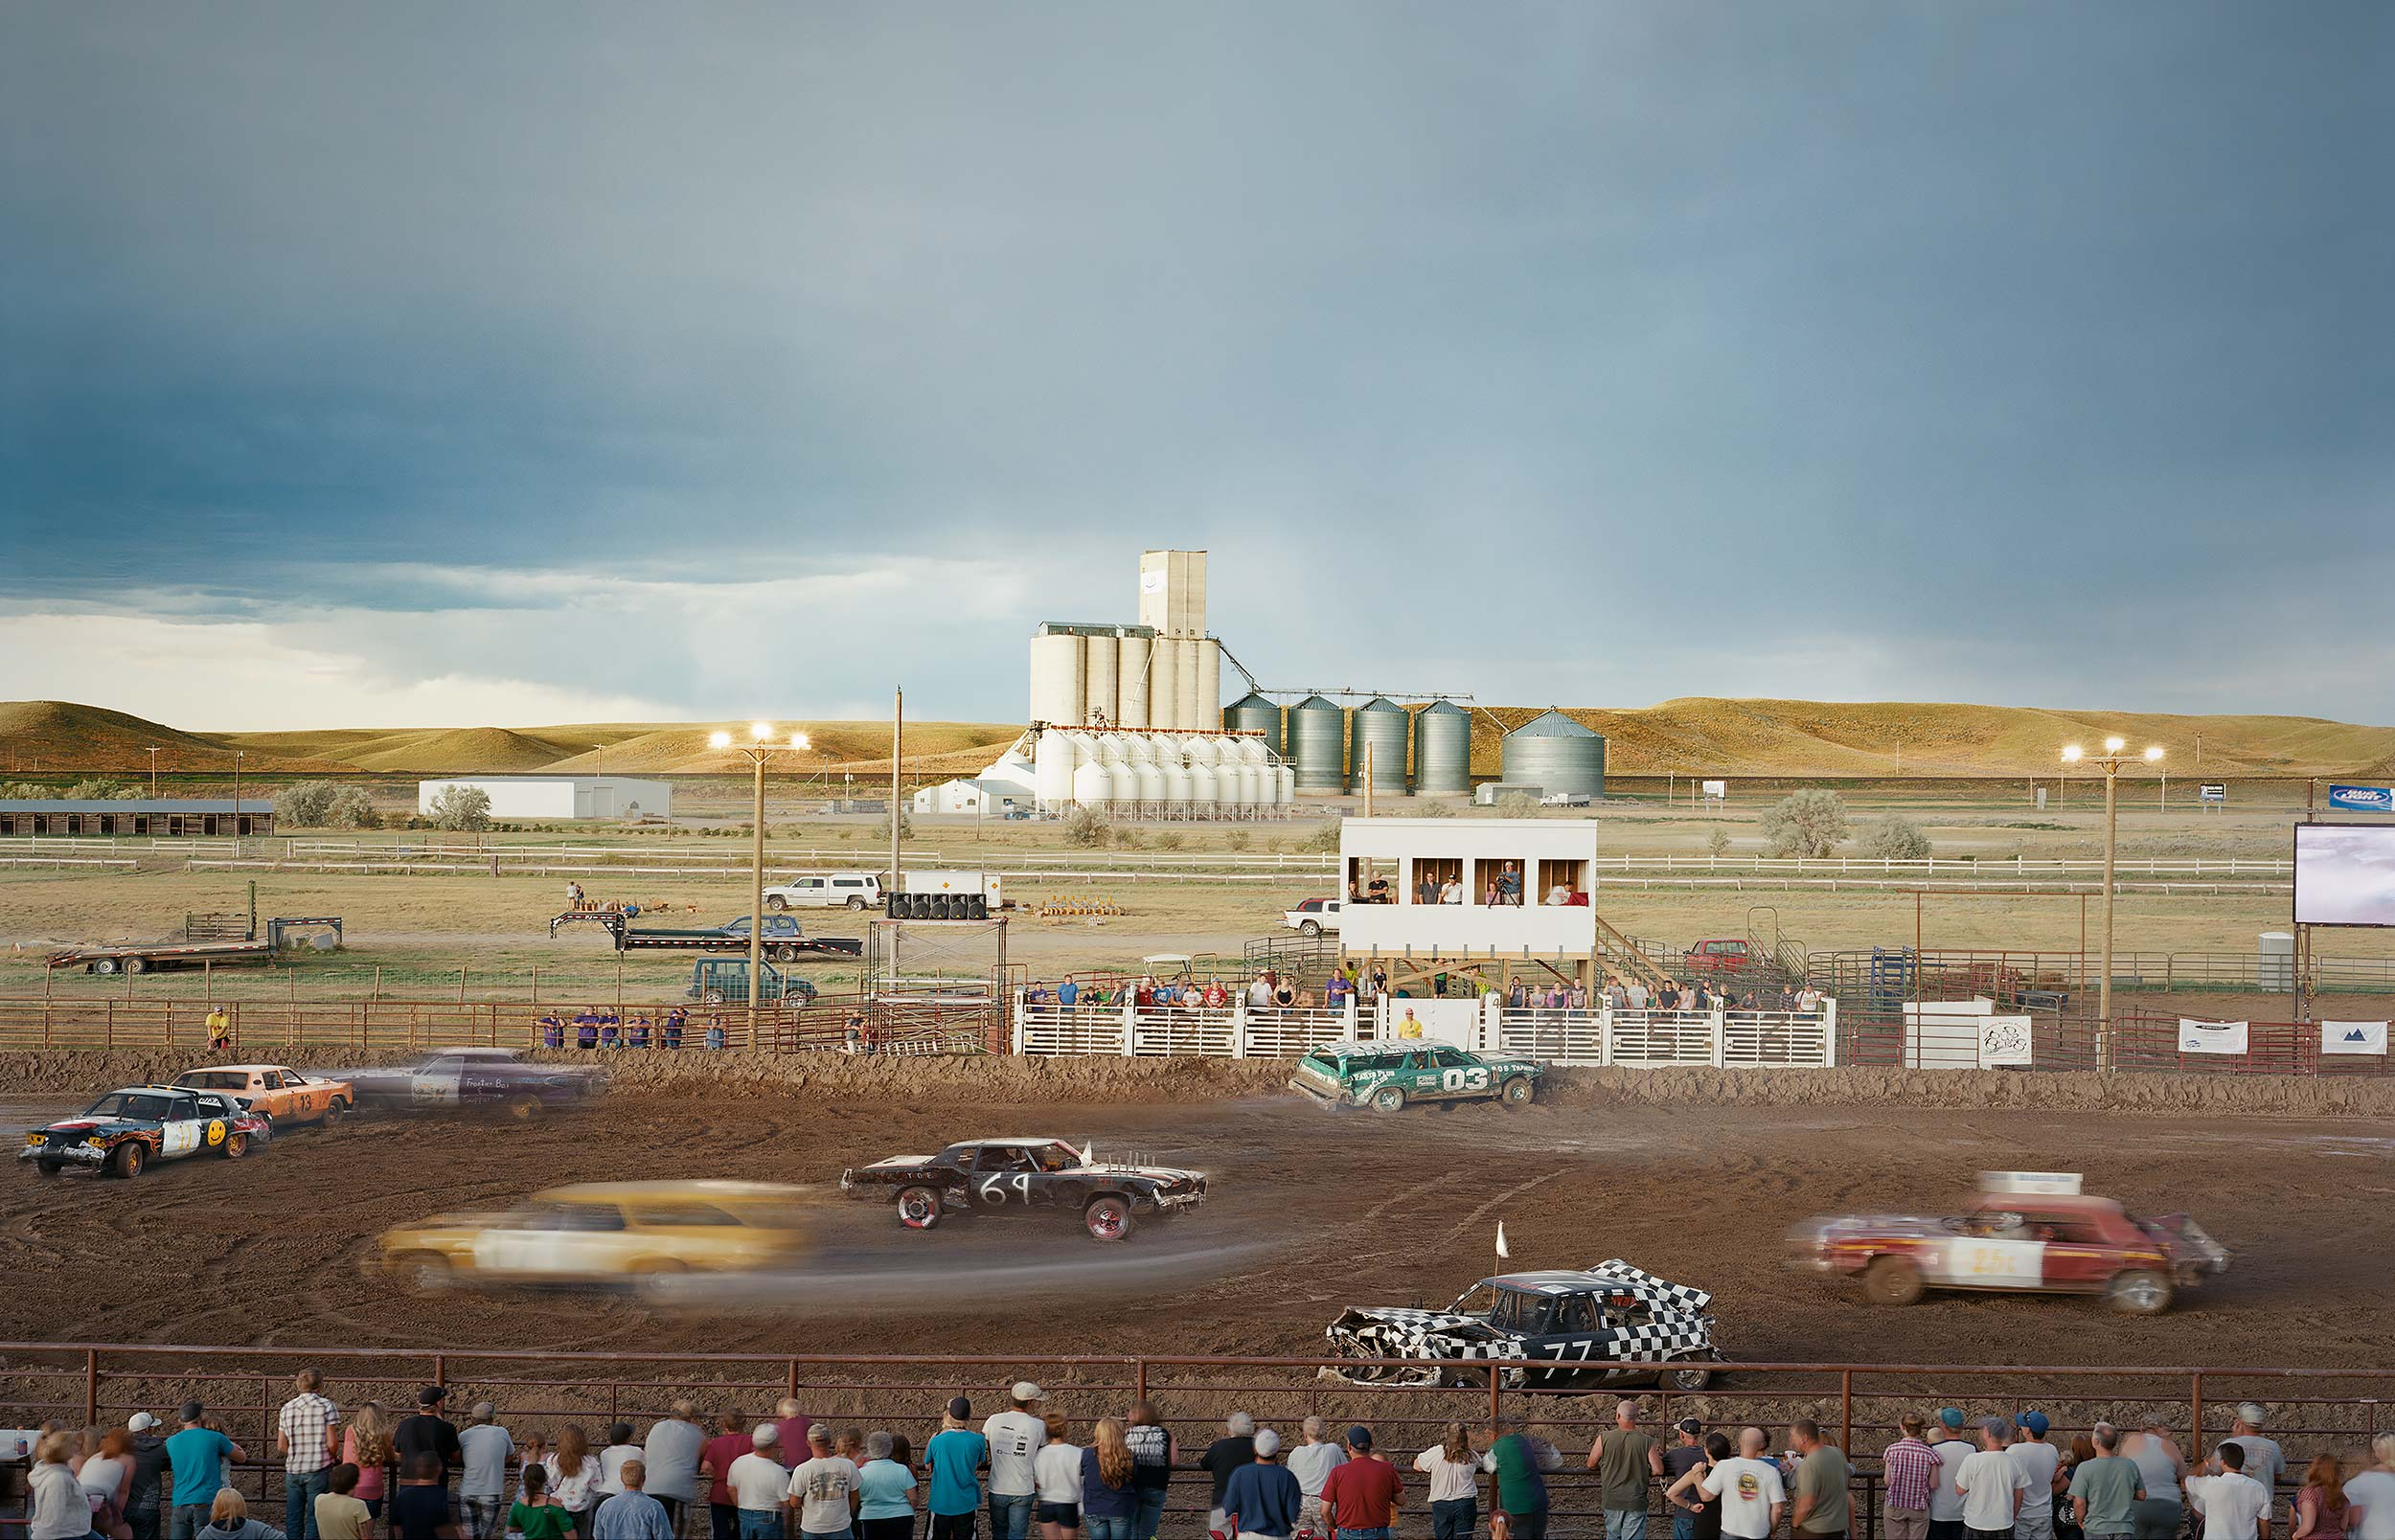 Demolition Derby at the Marias Stampede County Fair in Shelby, Montana